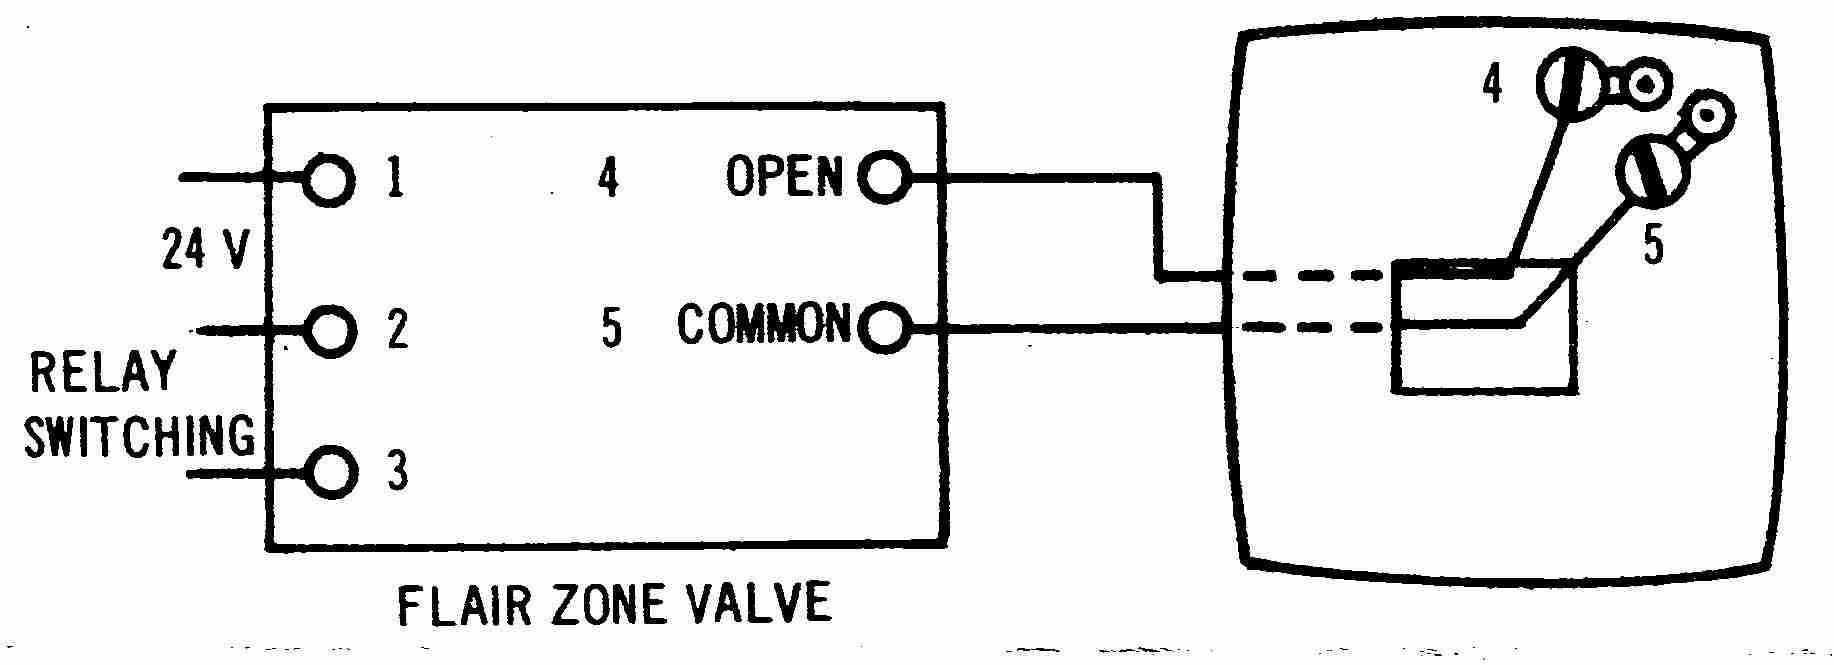 Room Thermostat Wiring Diagrams For Hvac Systems 6 Pole Relay Diagram Flair 2 Wire Thermosat